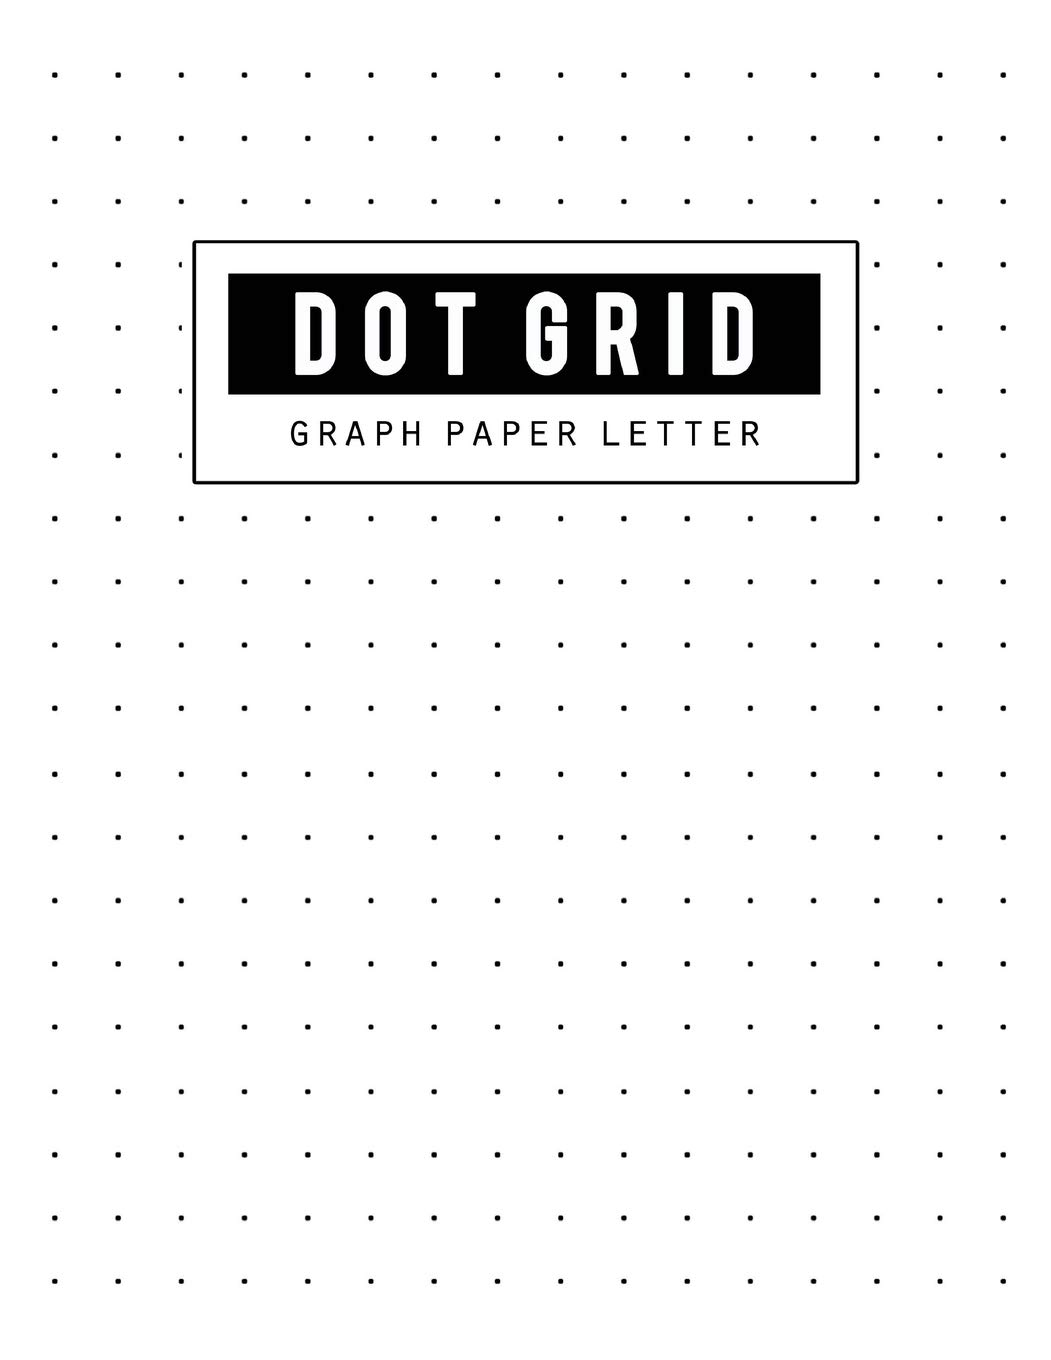 image about A5 Dot Grid Printable referred to as Graph Paper Dot Grid: Letter Dot Paper Blank Graphing